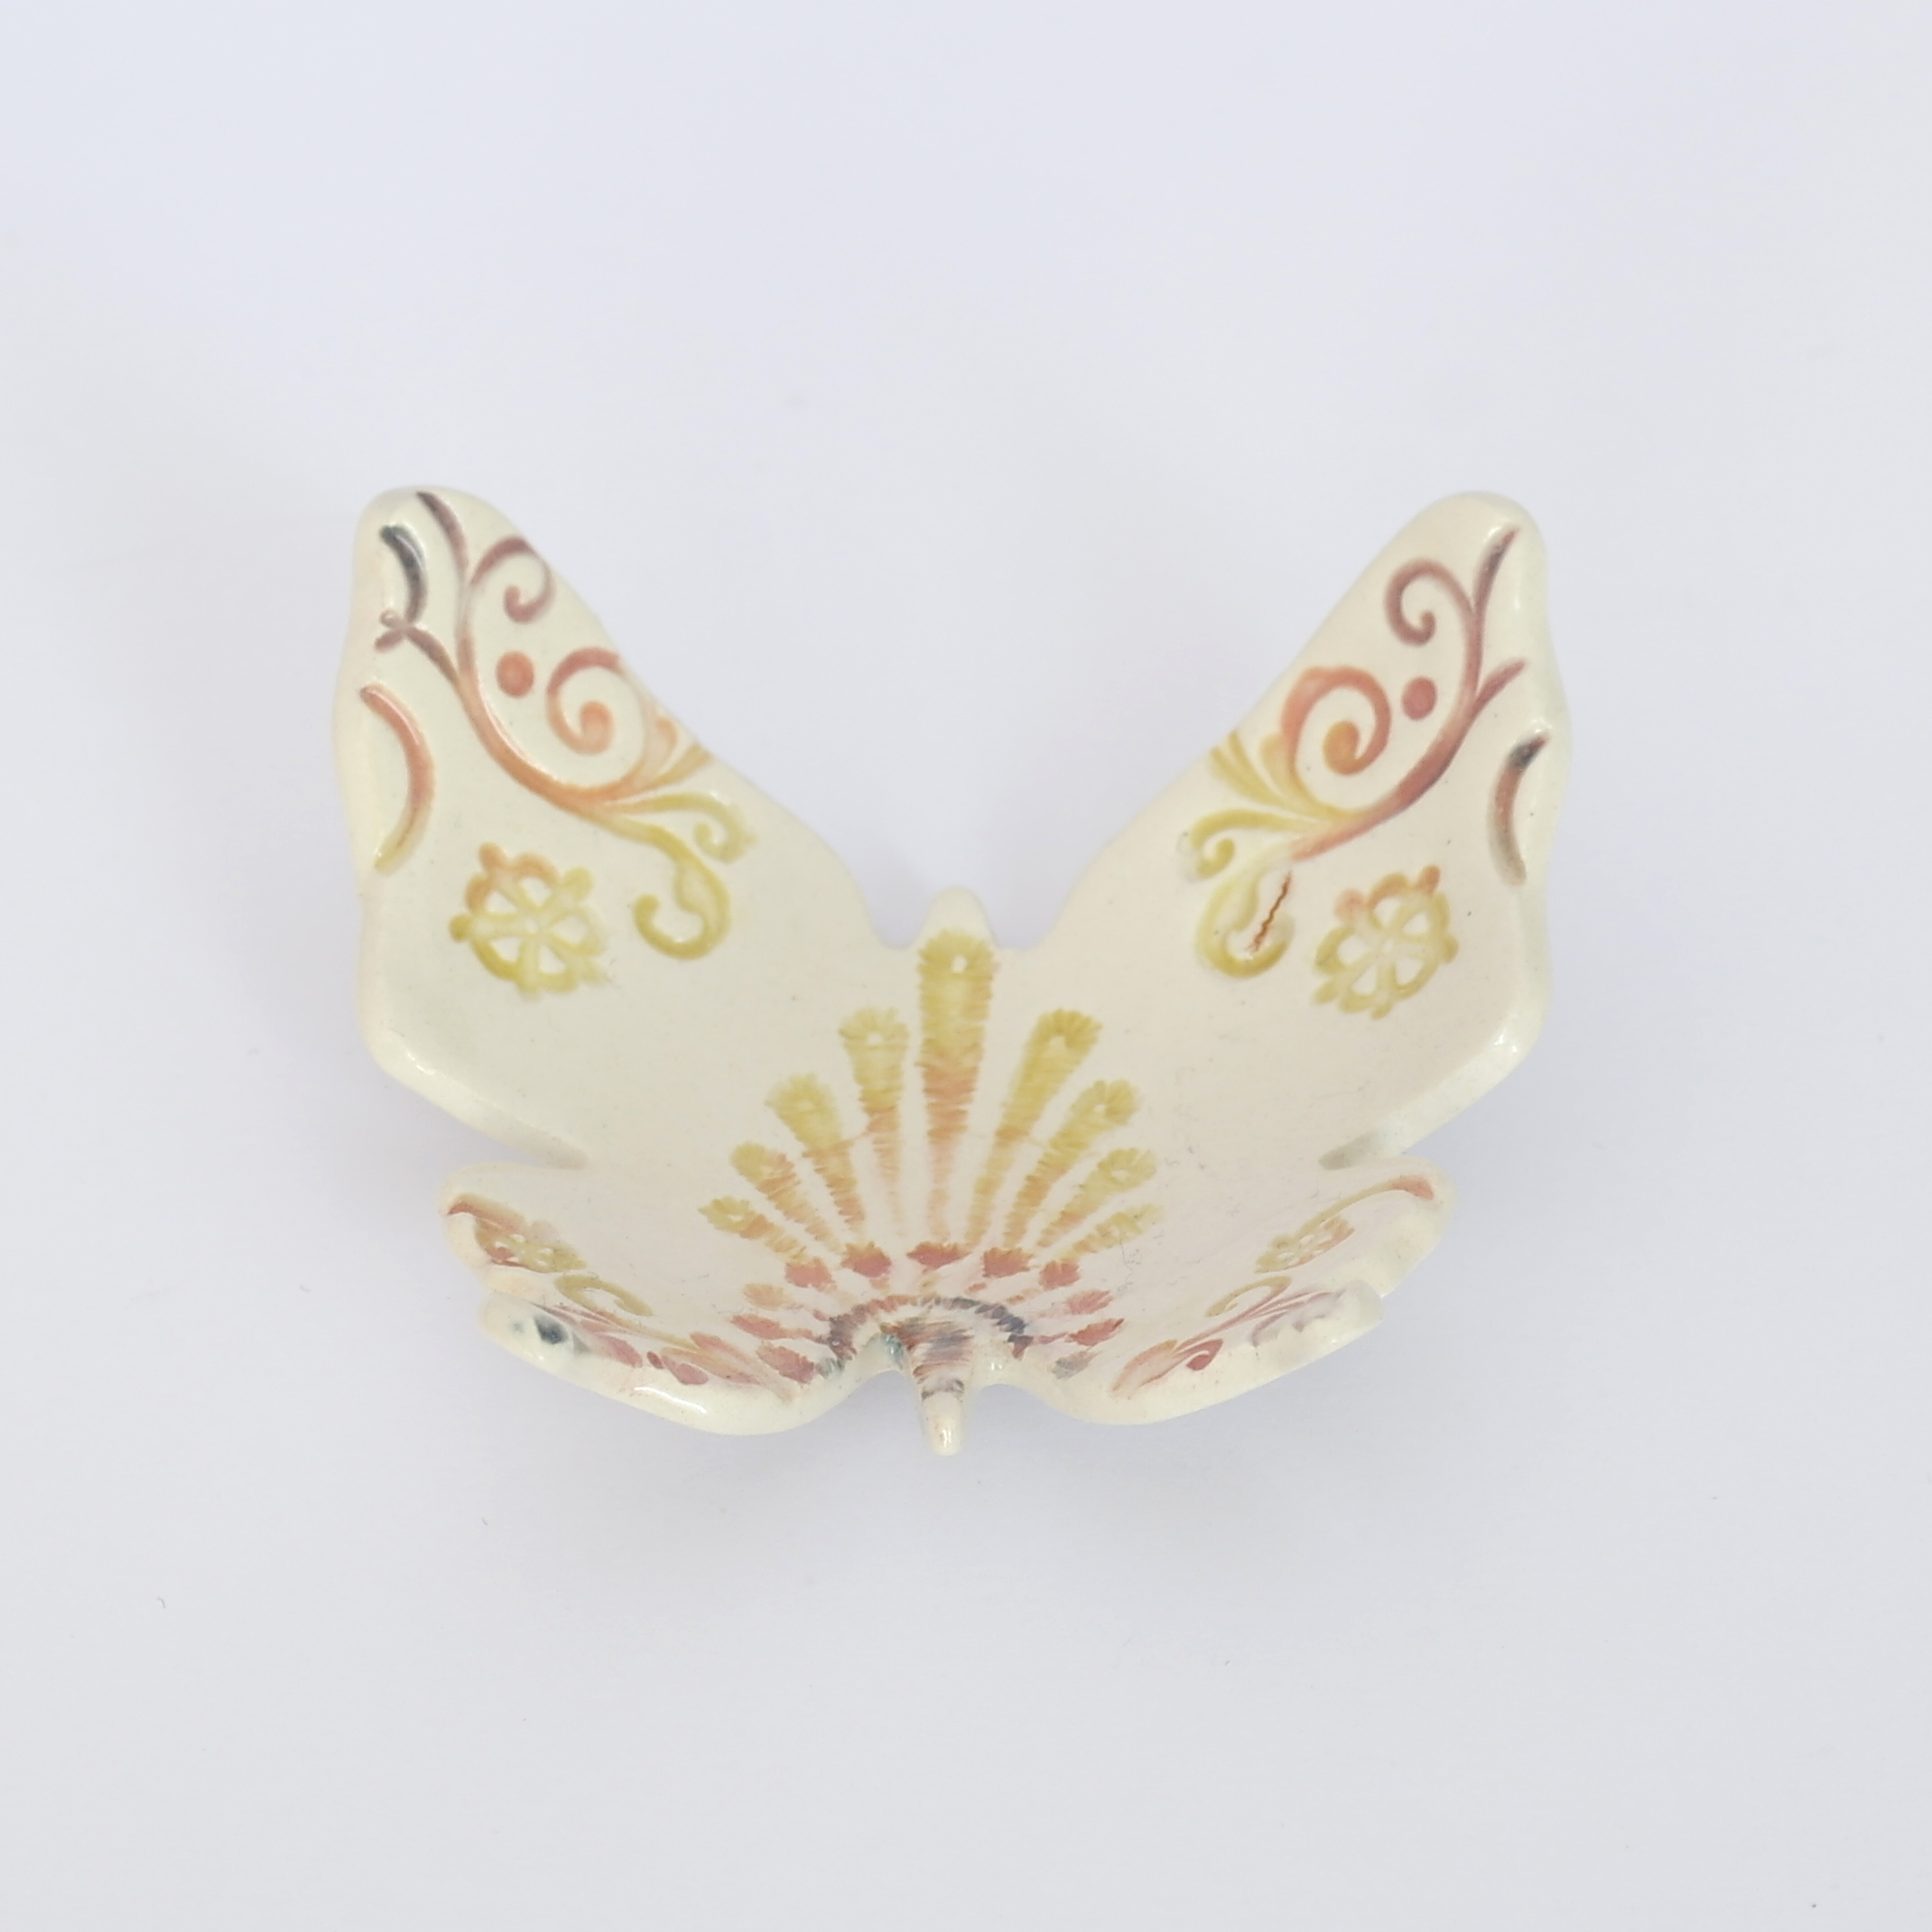 Decorative Ceramic Butterfly Dishes available in various colourways